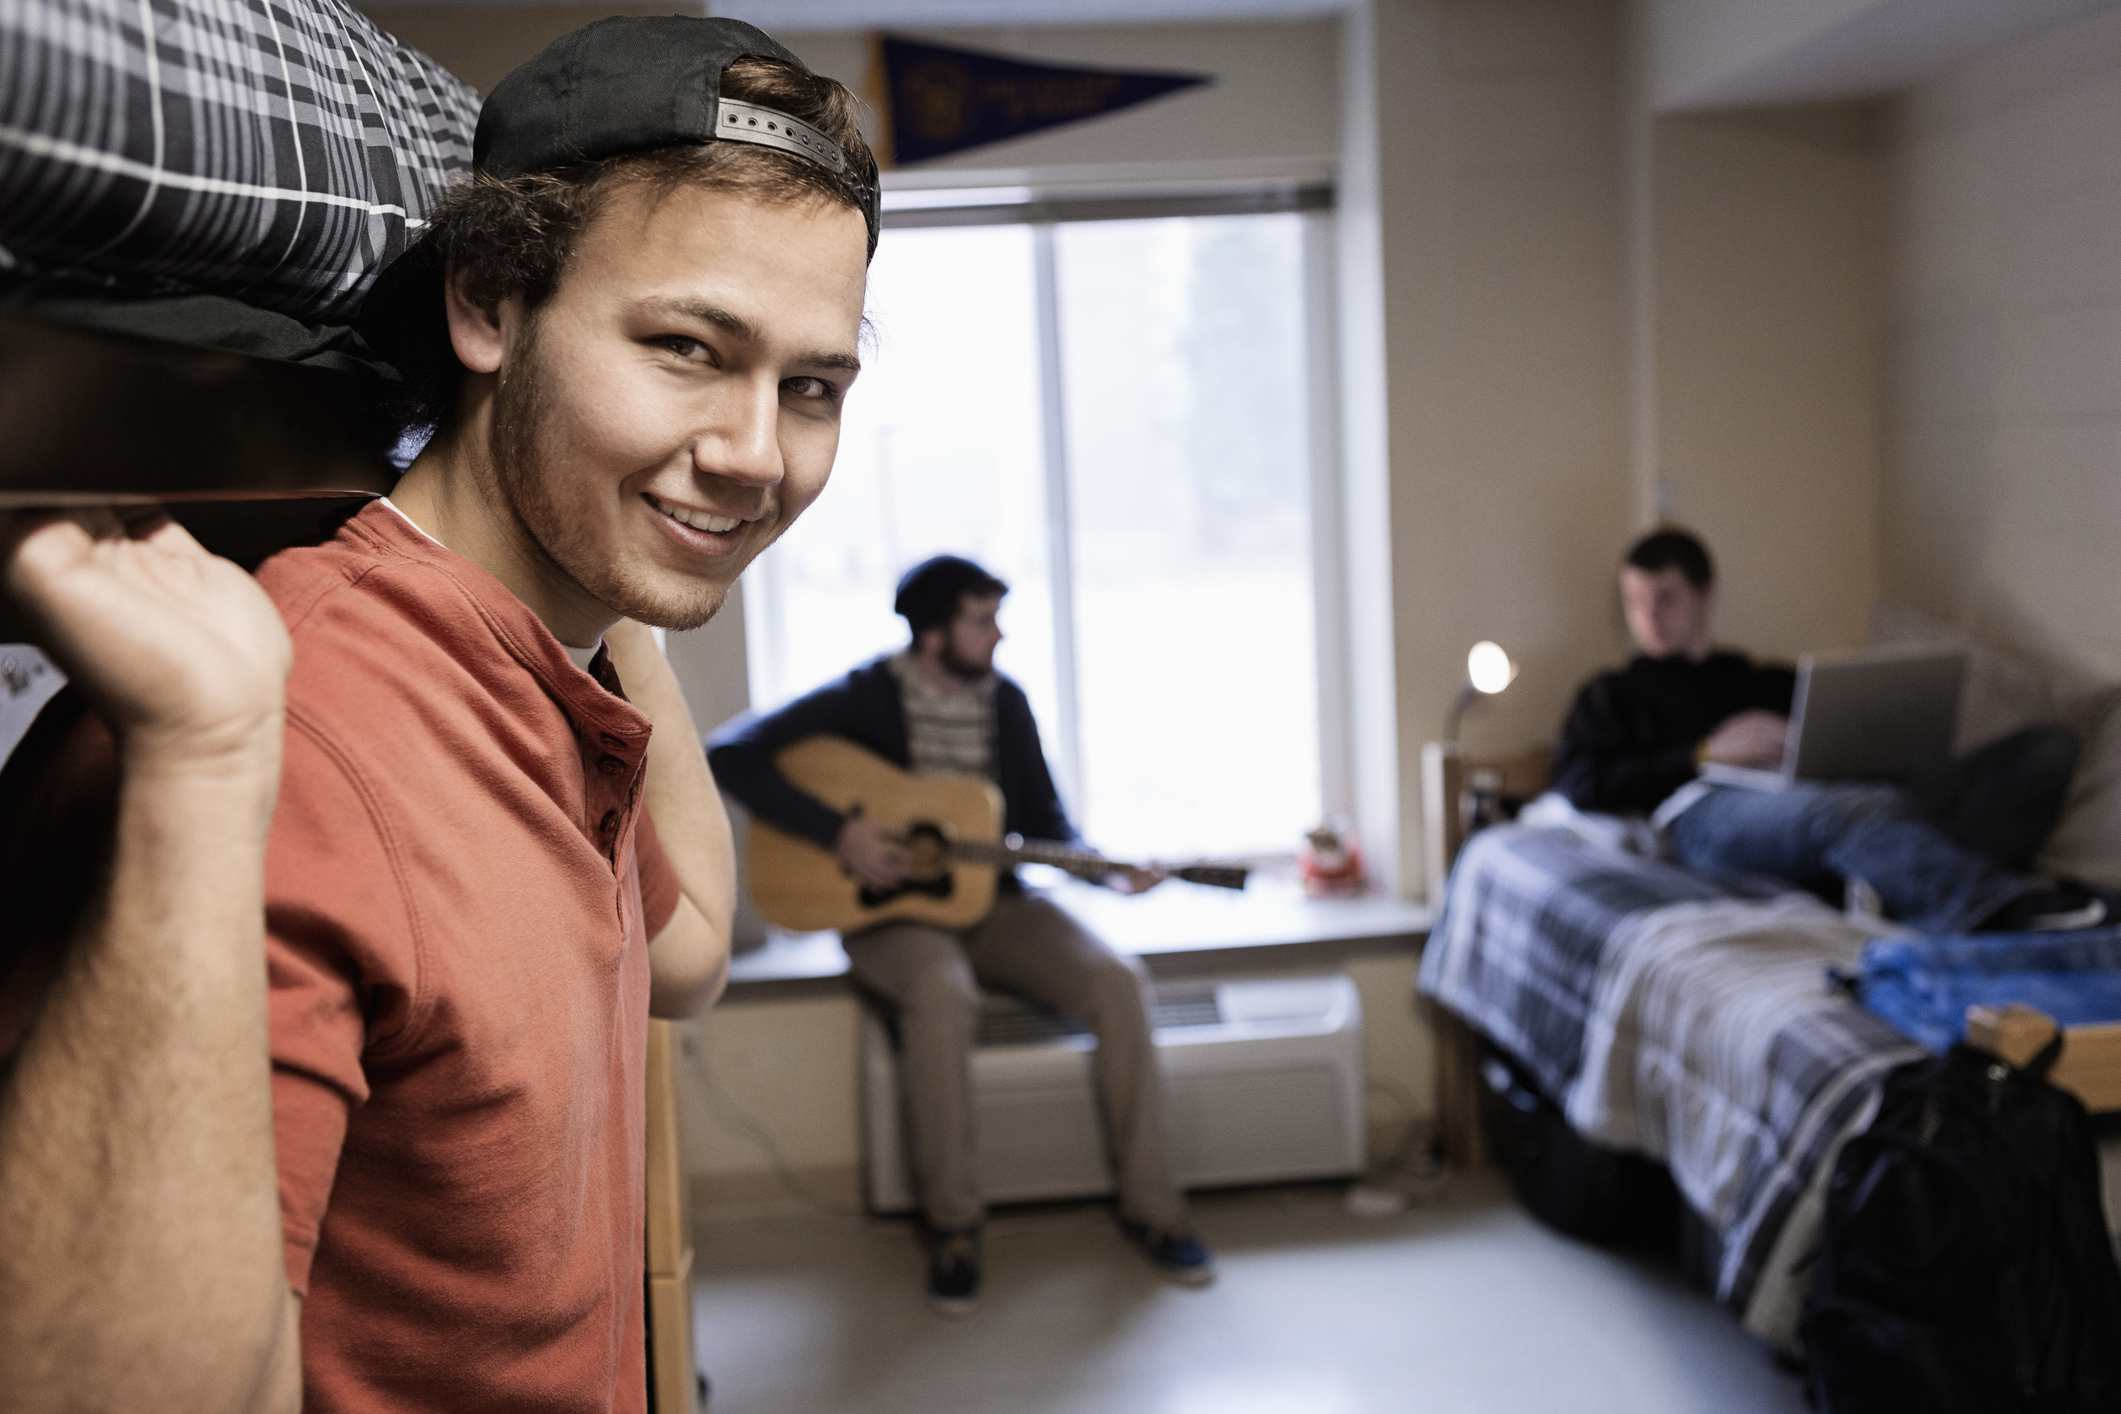 Freshman Excited to Return to Loud Roommate Sex After Week of Loud Parent Sex